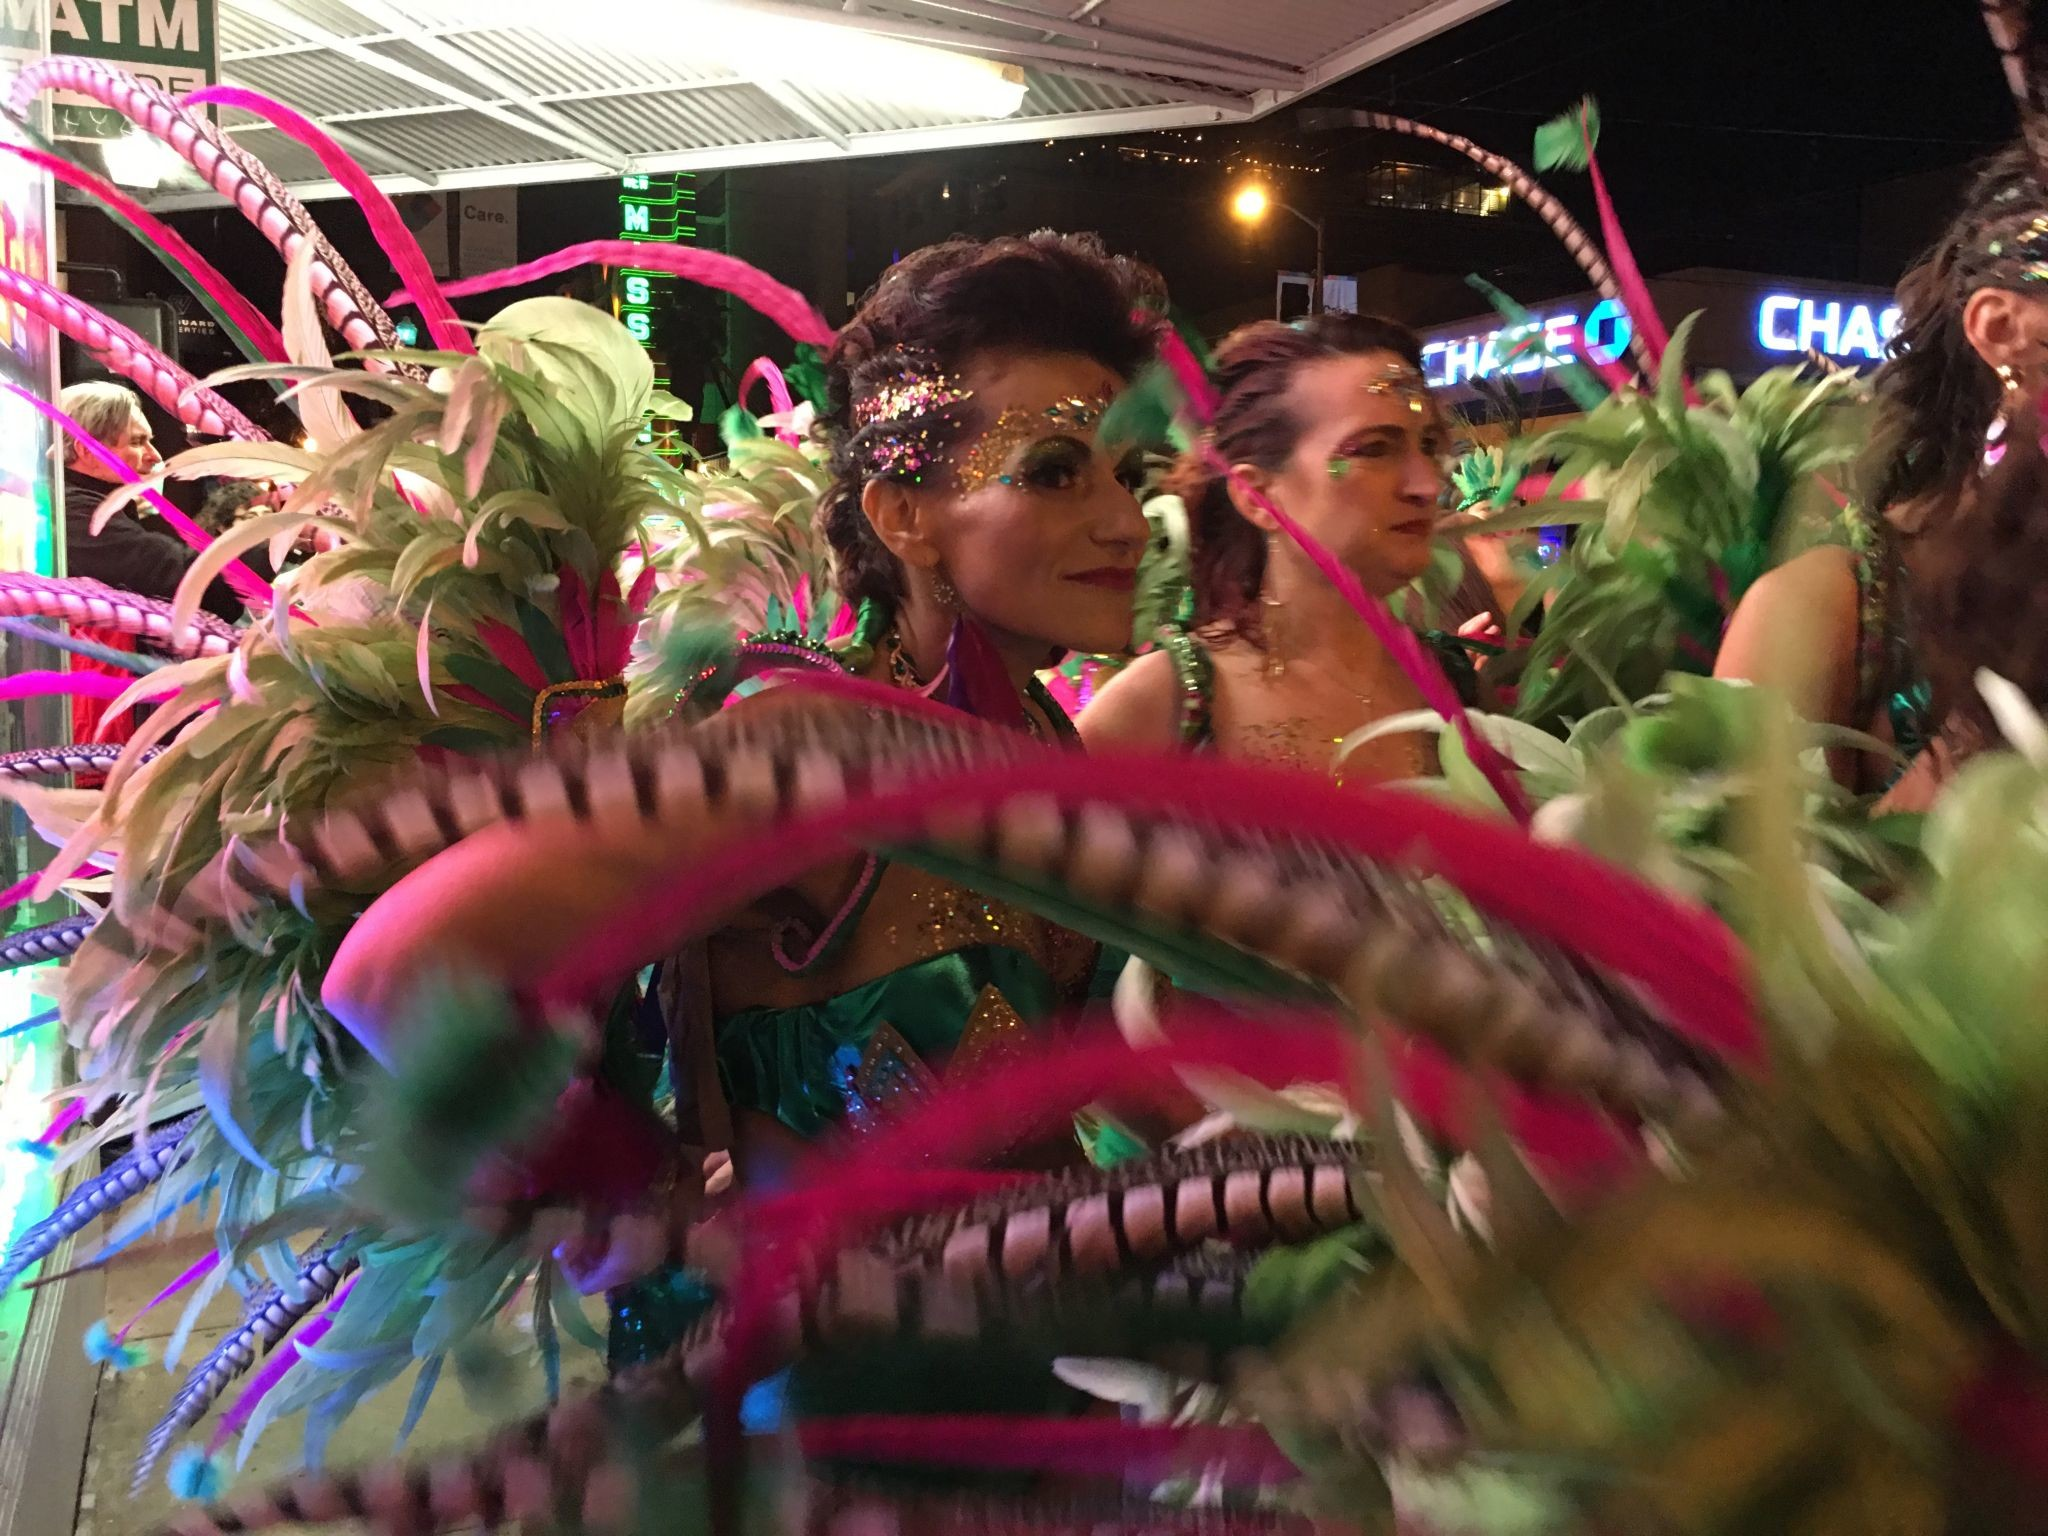 2048x1536 Mardi Gras dancers take over SF's Mission; Colorful Carnaval celebration  counteracts 'hate'